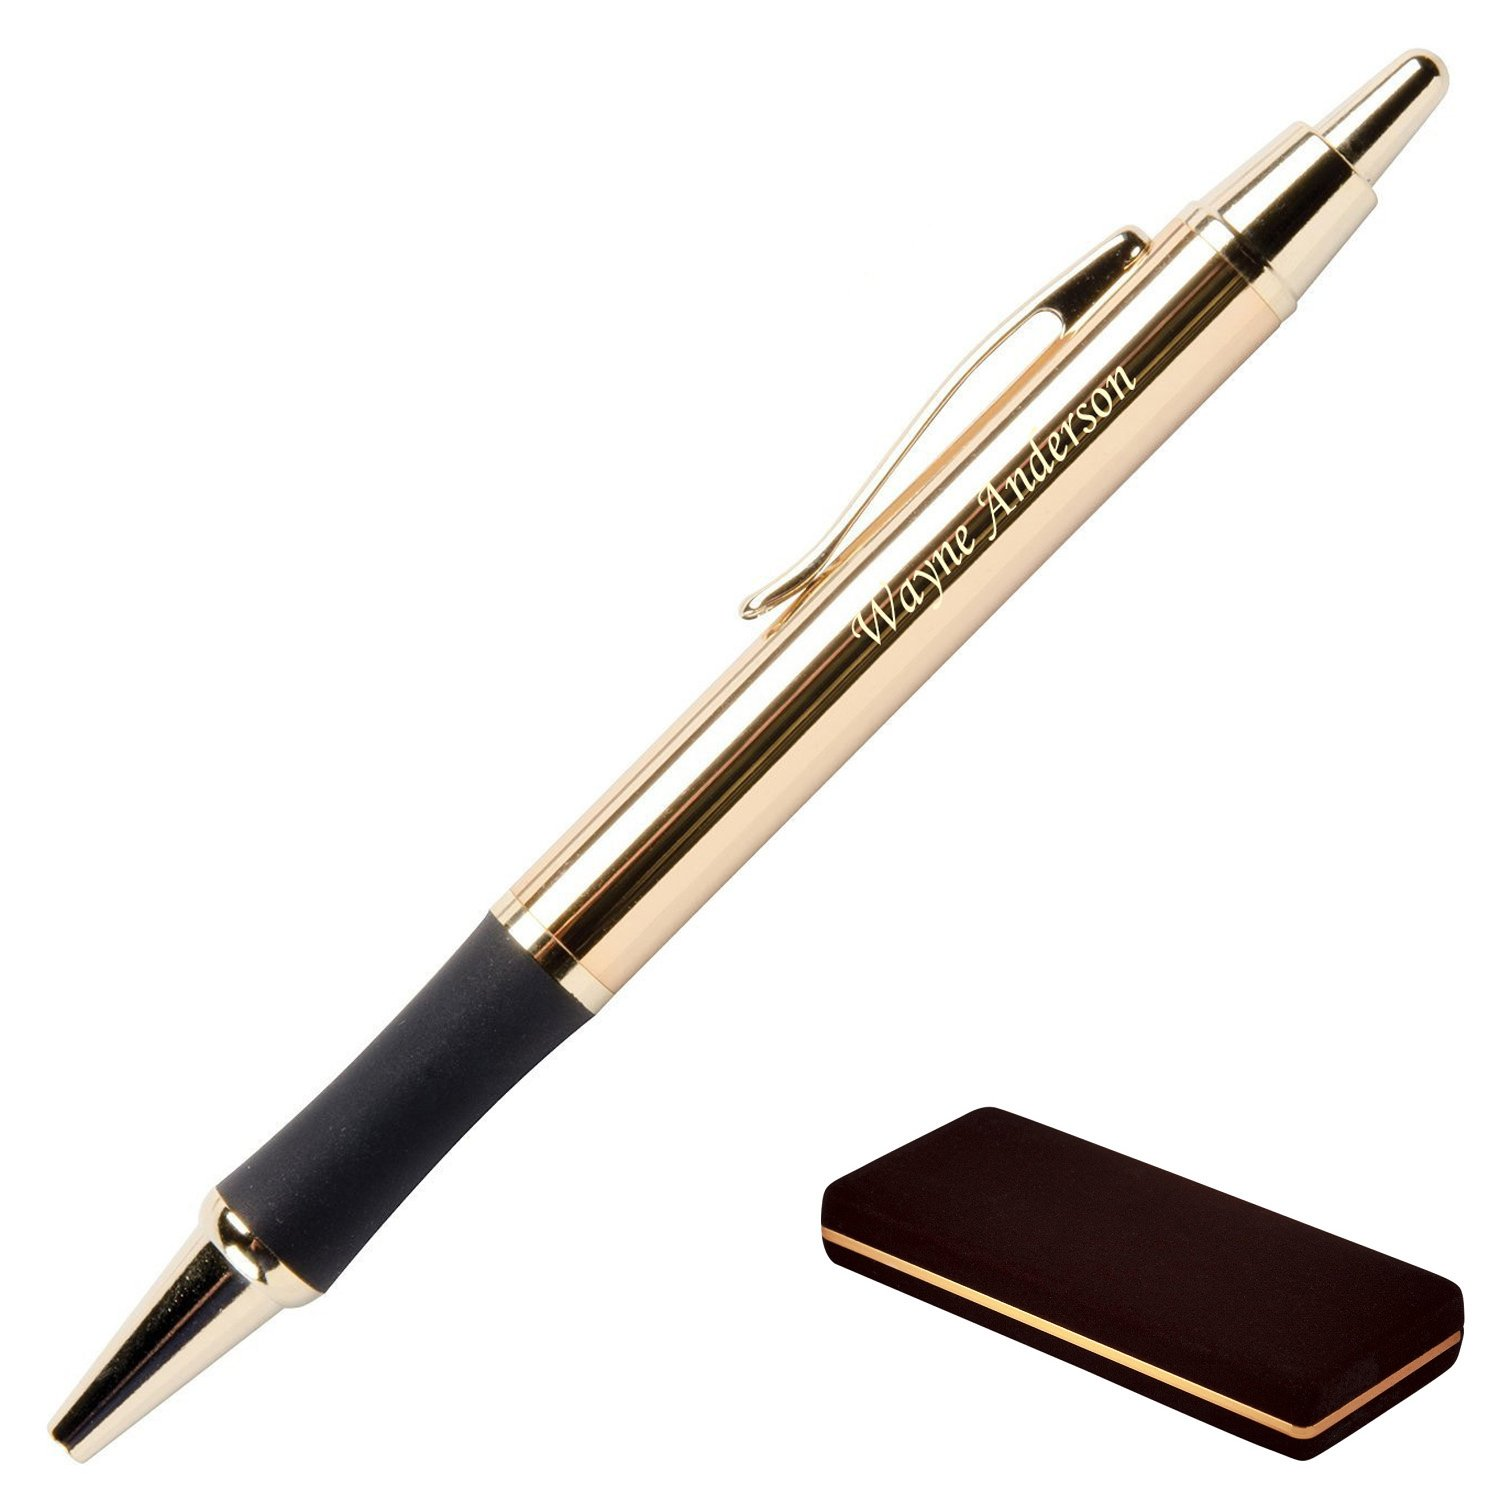 Dayspring Pens - Personalized Monroe 18 Karat Gold Plated Gift Click Pen and Case - Custom engraved fast with your name.